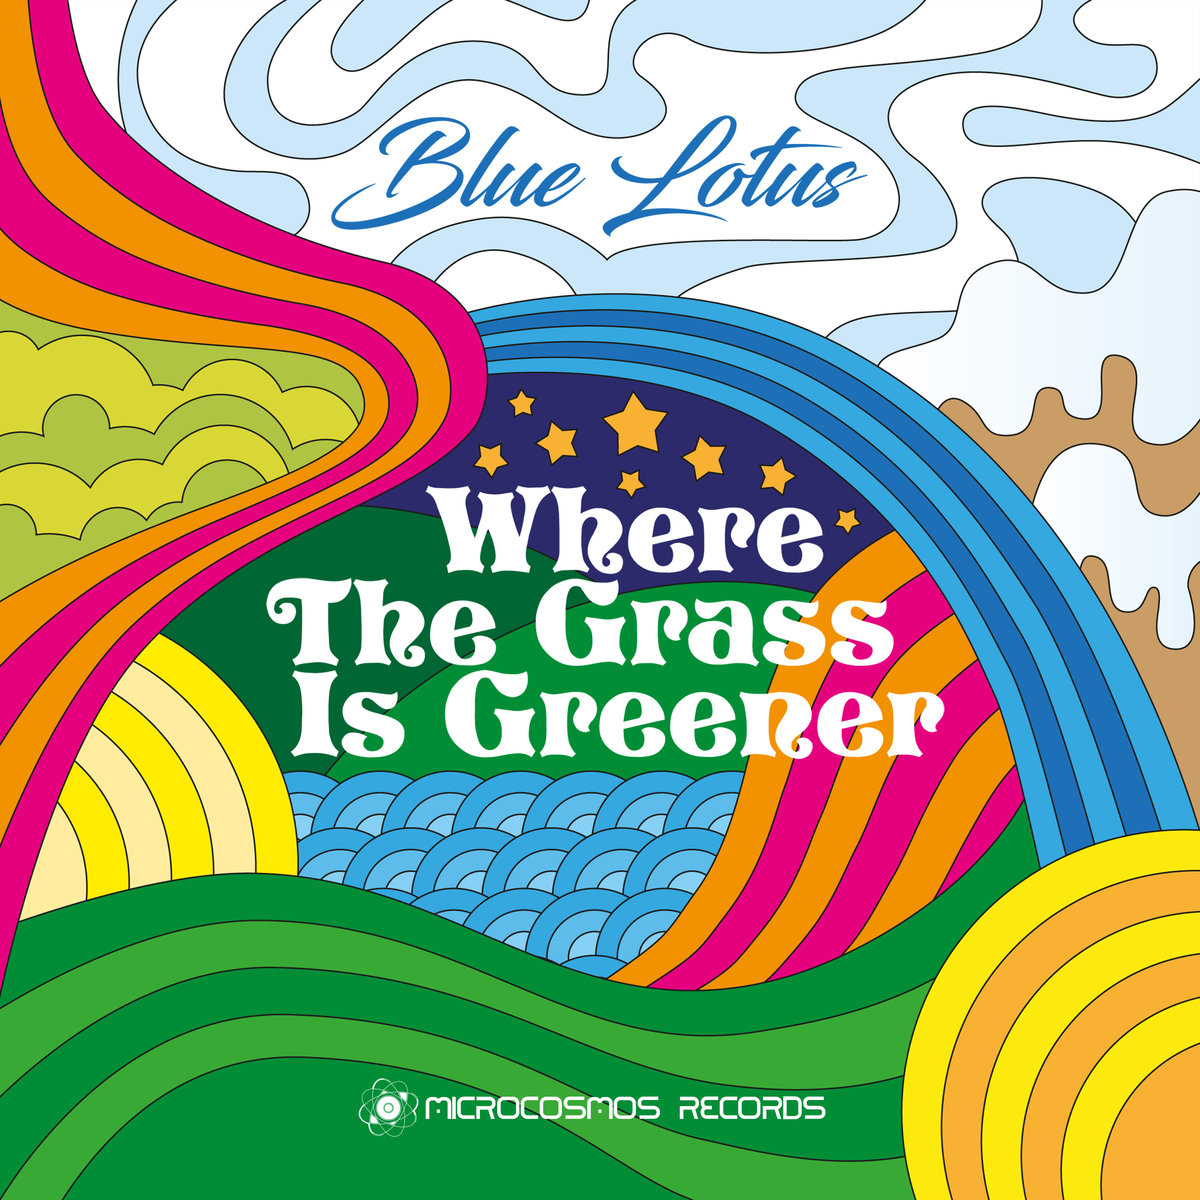 Blue Lotus - Interlacement @ 'Where The Grass Is Greener' album (ambient, chill-out)